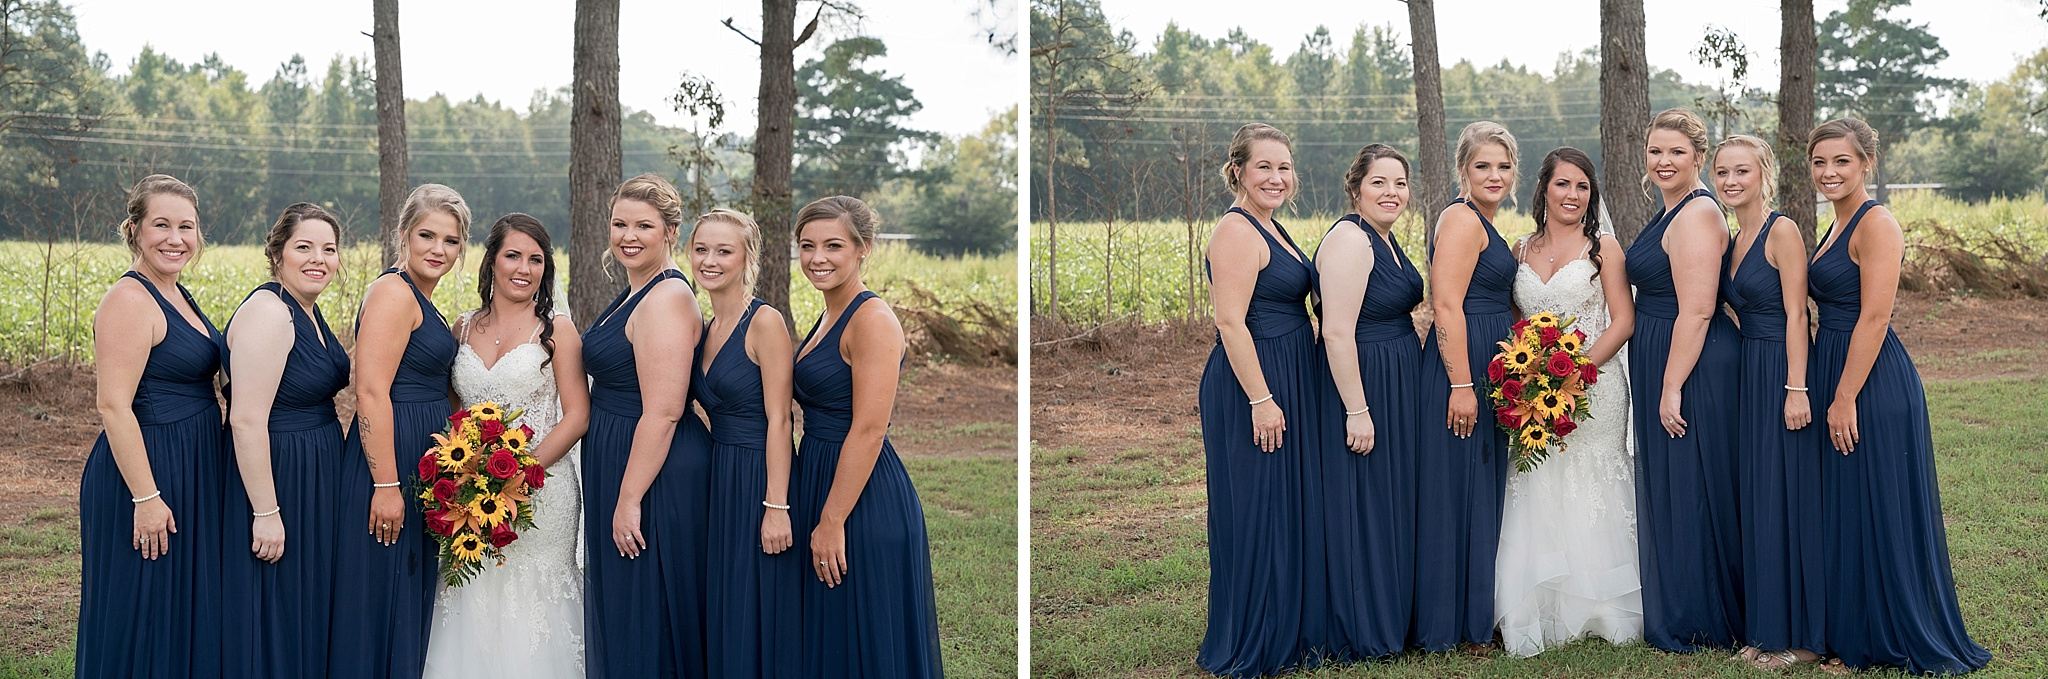 Bailey-NC-Wedding-Photographer-146.jpg